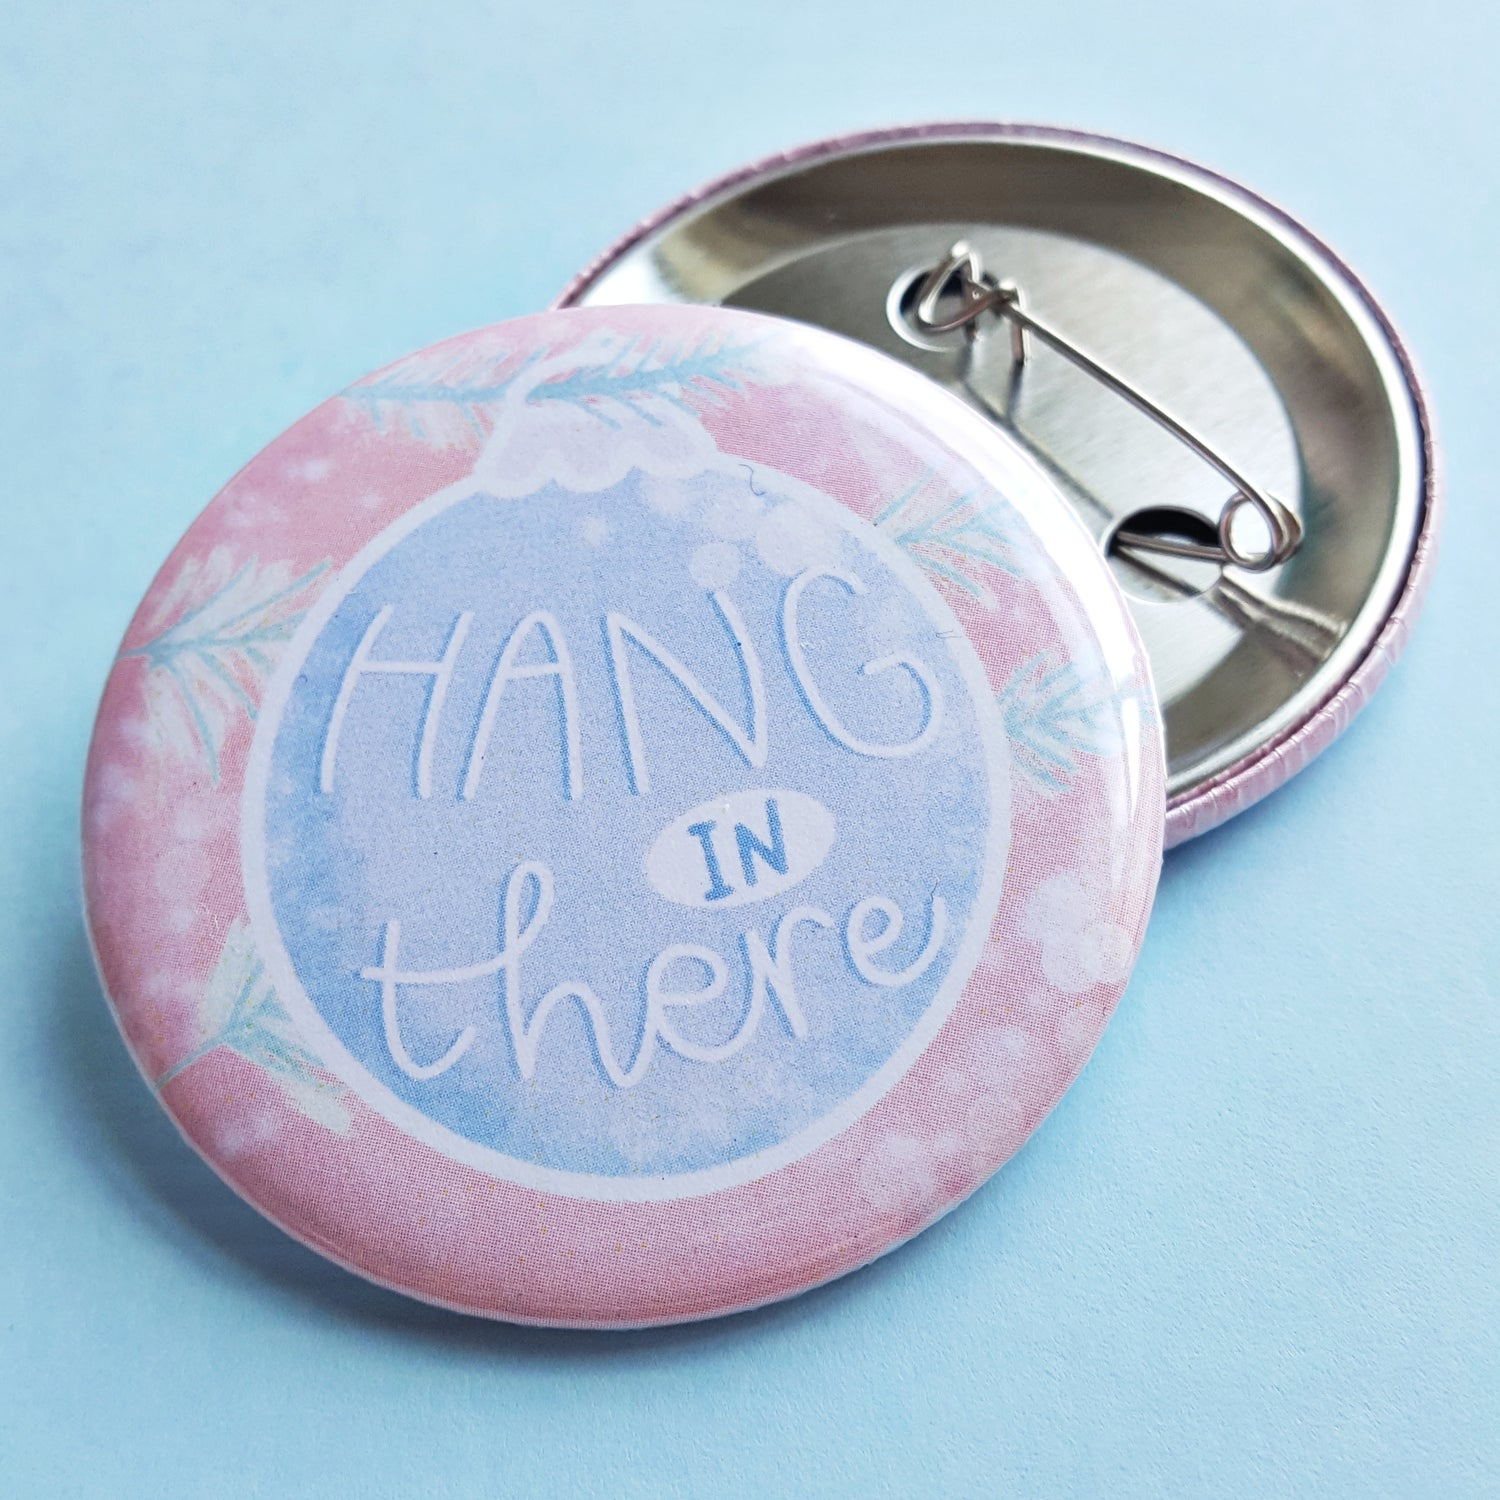 Image of Hang in there - Christmas Bauble Button Badge